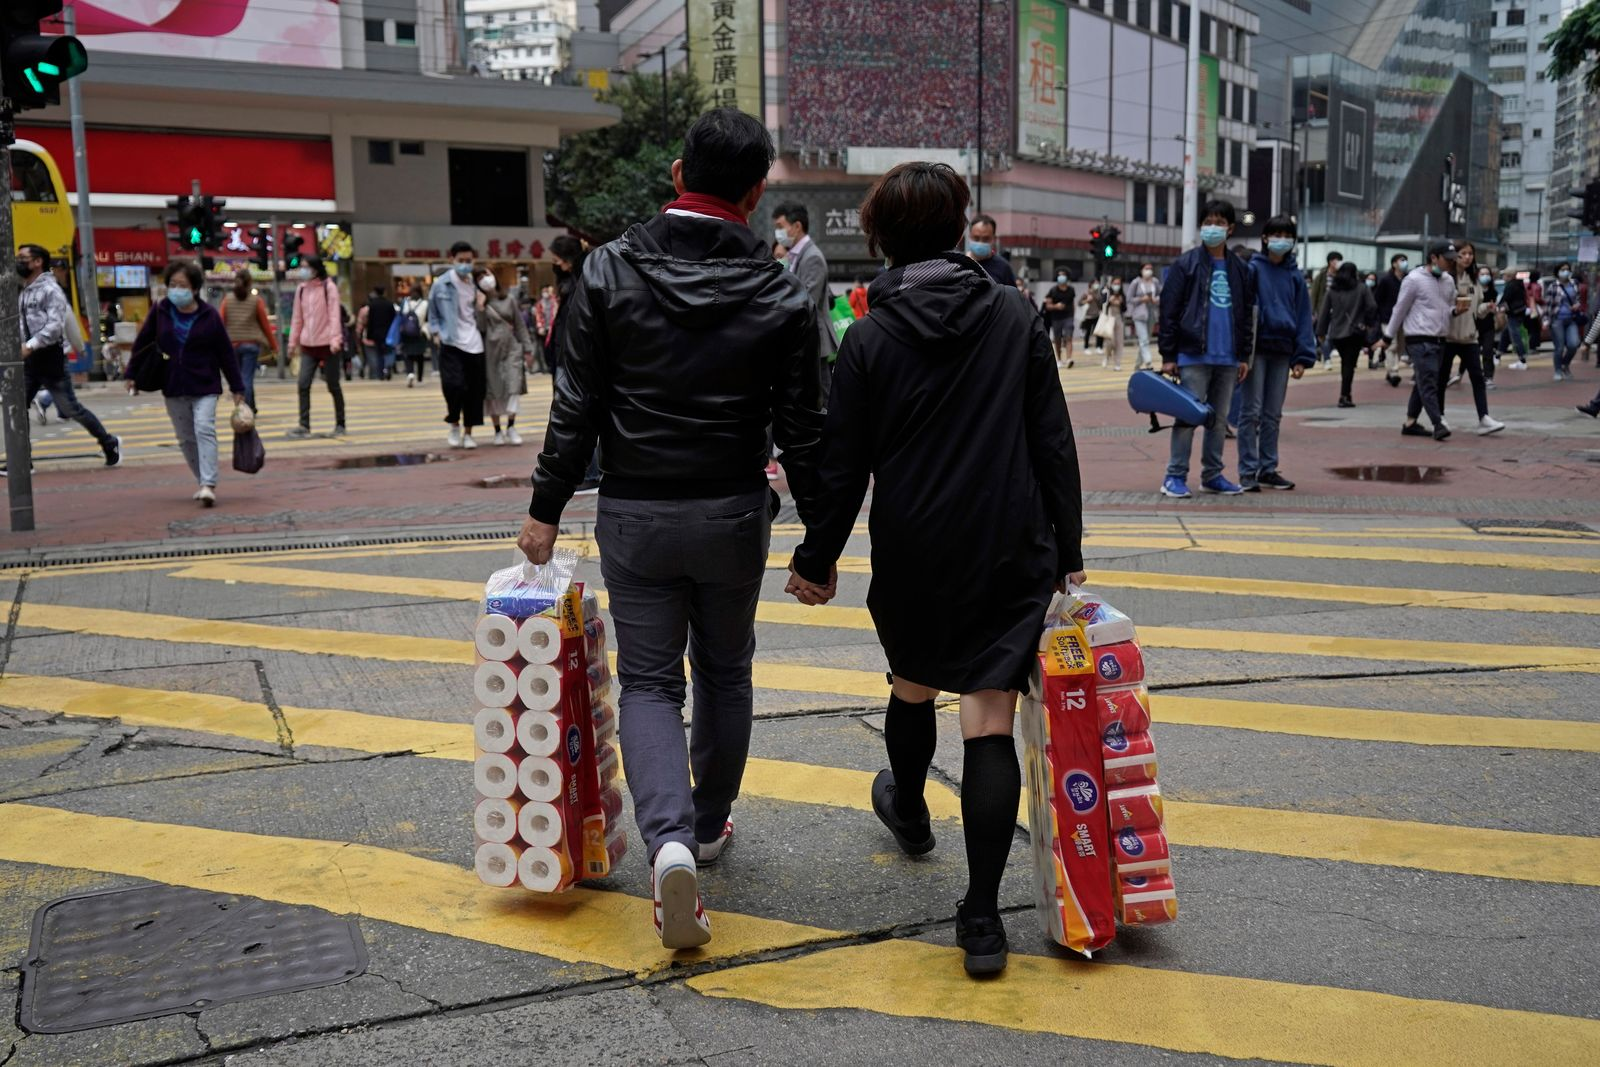 A couple carry a supply of toilet paper at a street on Valentine's Day in Hong Kong, Friday, Feb. 14, 2020. China on Friday reported another sharp rise in the number of people infected with a new virus, as the death toll neared 1,400. (AP Photo/Kin Cheung)